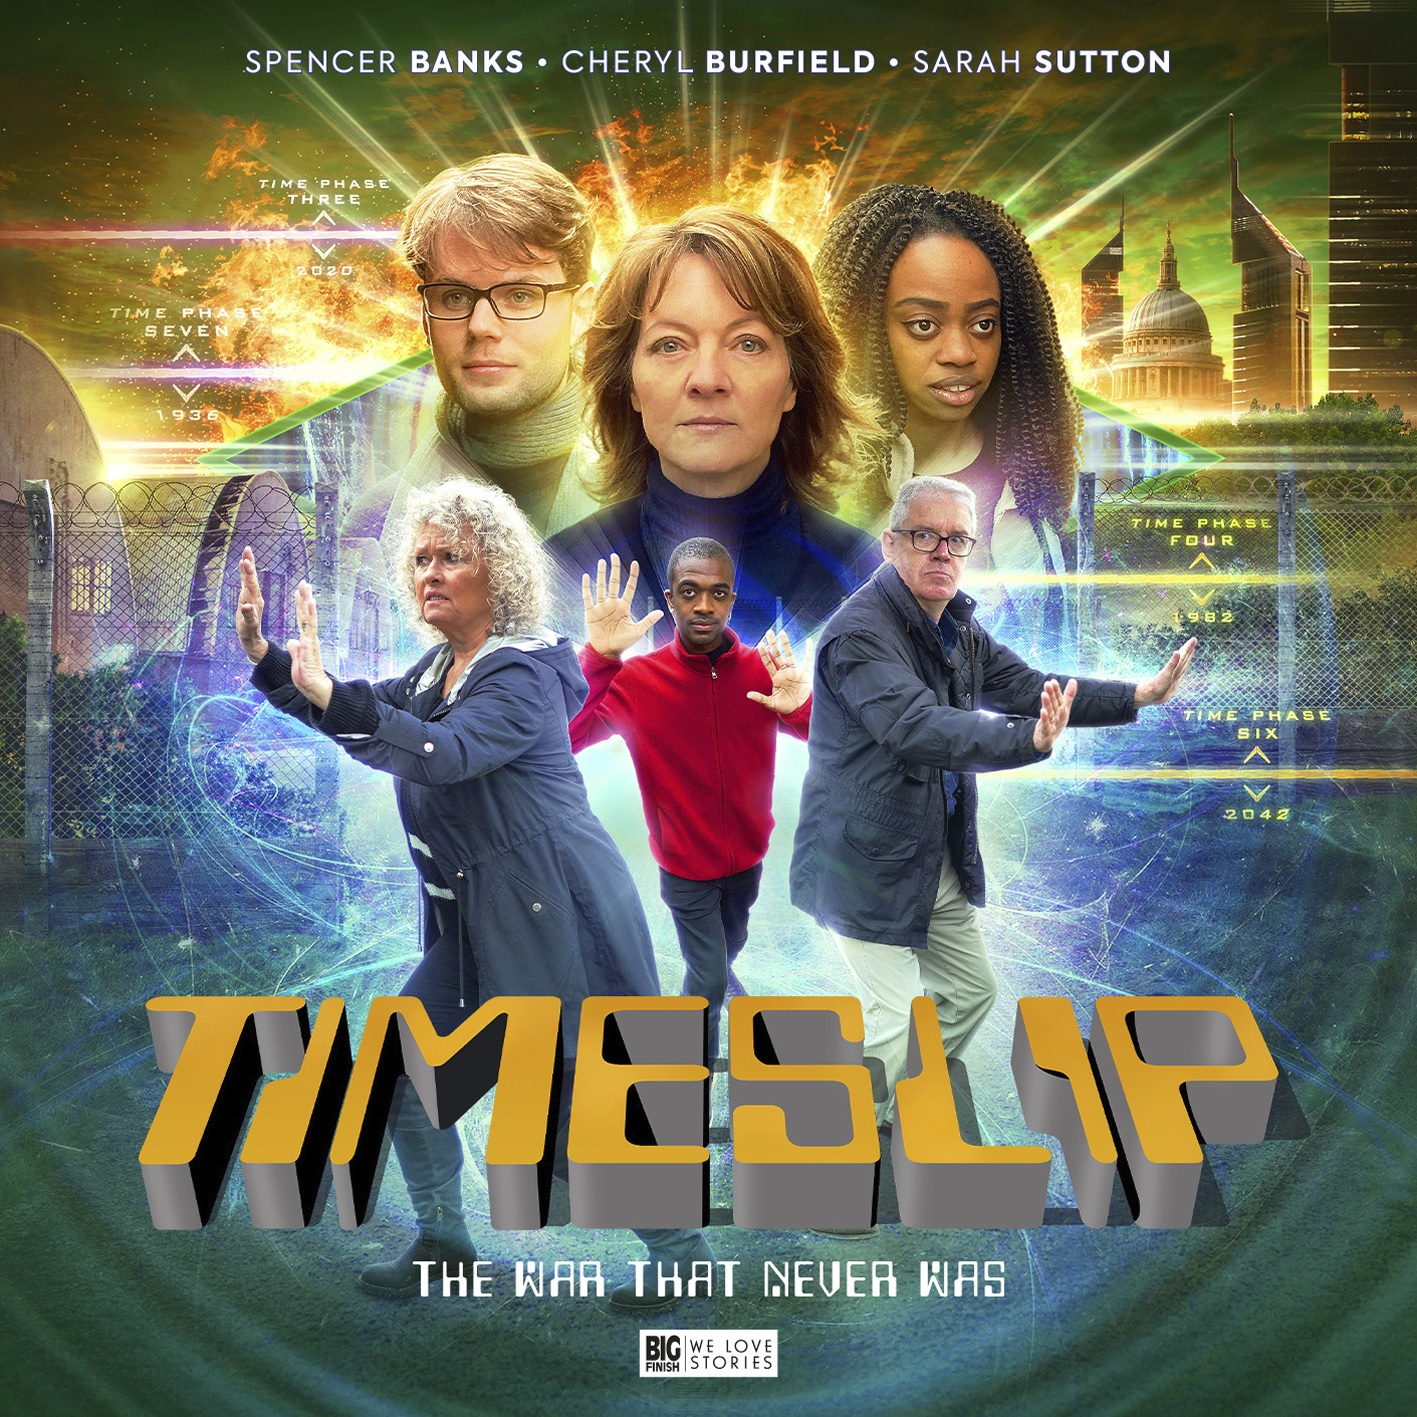 Out Now: Big Finish's Timeslip – The War That Never Was, Starring Sarah Sutton